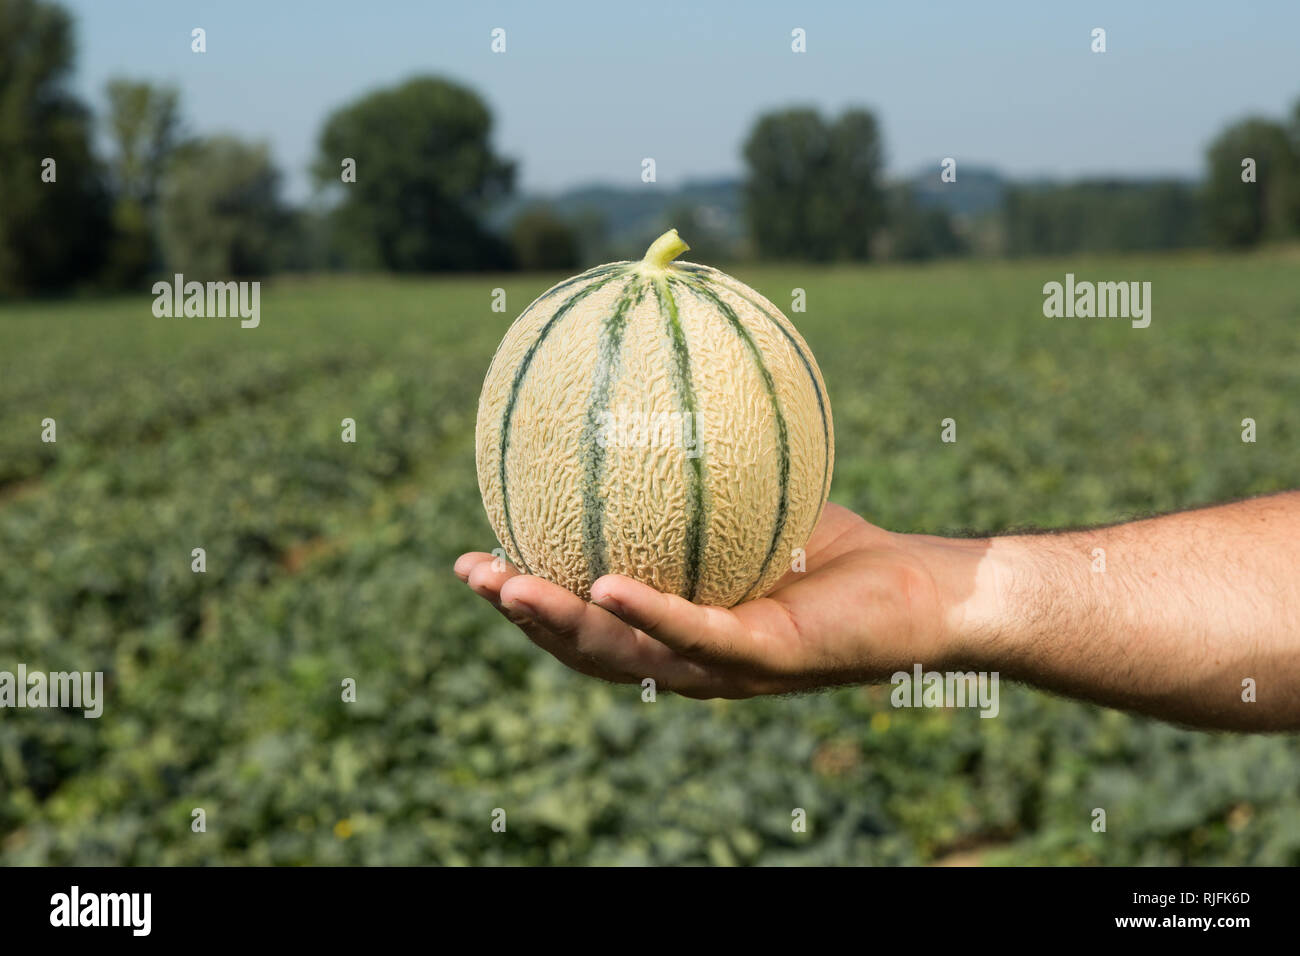 Cultivation of melon from Quercy in the Tarn-et-Garonne department (south-eastern France). Melon in a hand - Stock Image